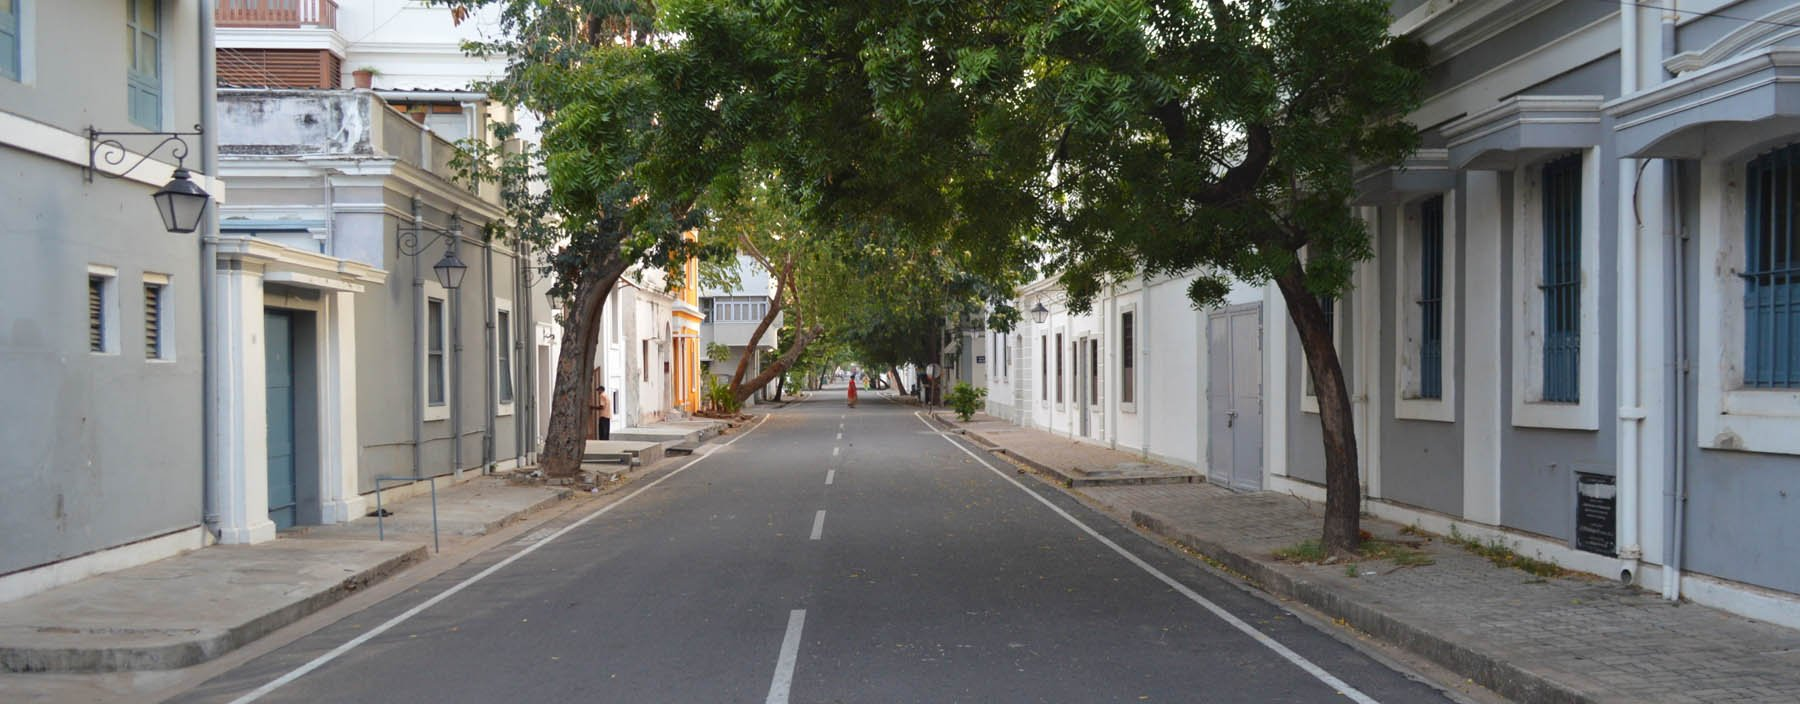 in, pondicherry, franse wijk.jpg